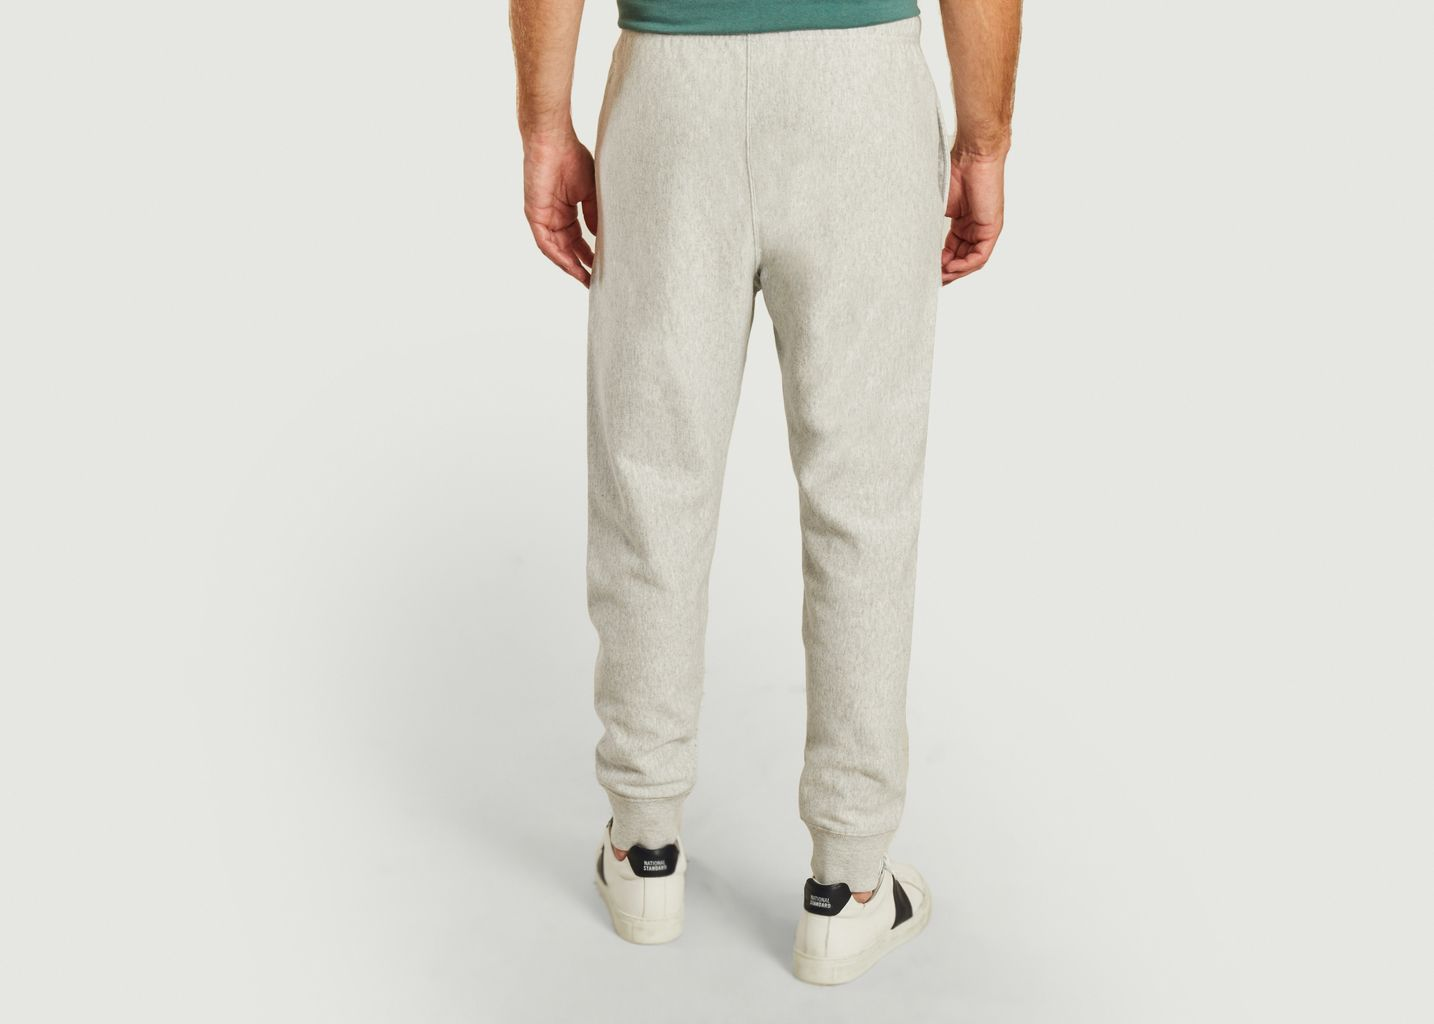 Pantalon de jogging siglé - Champion